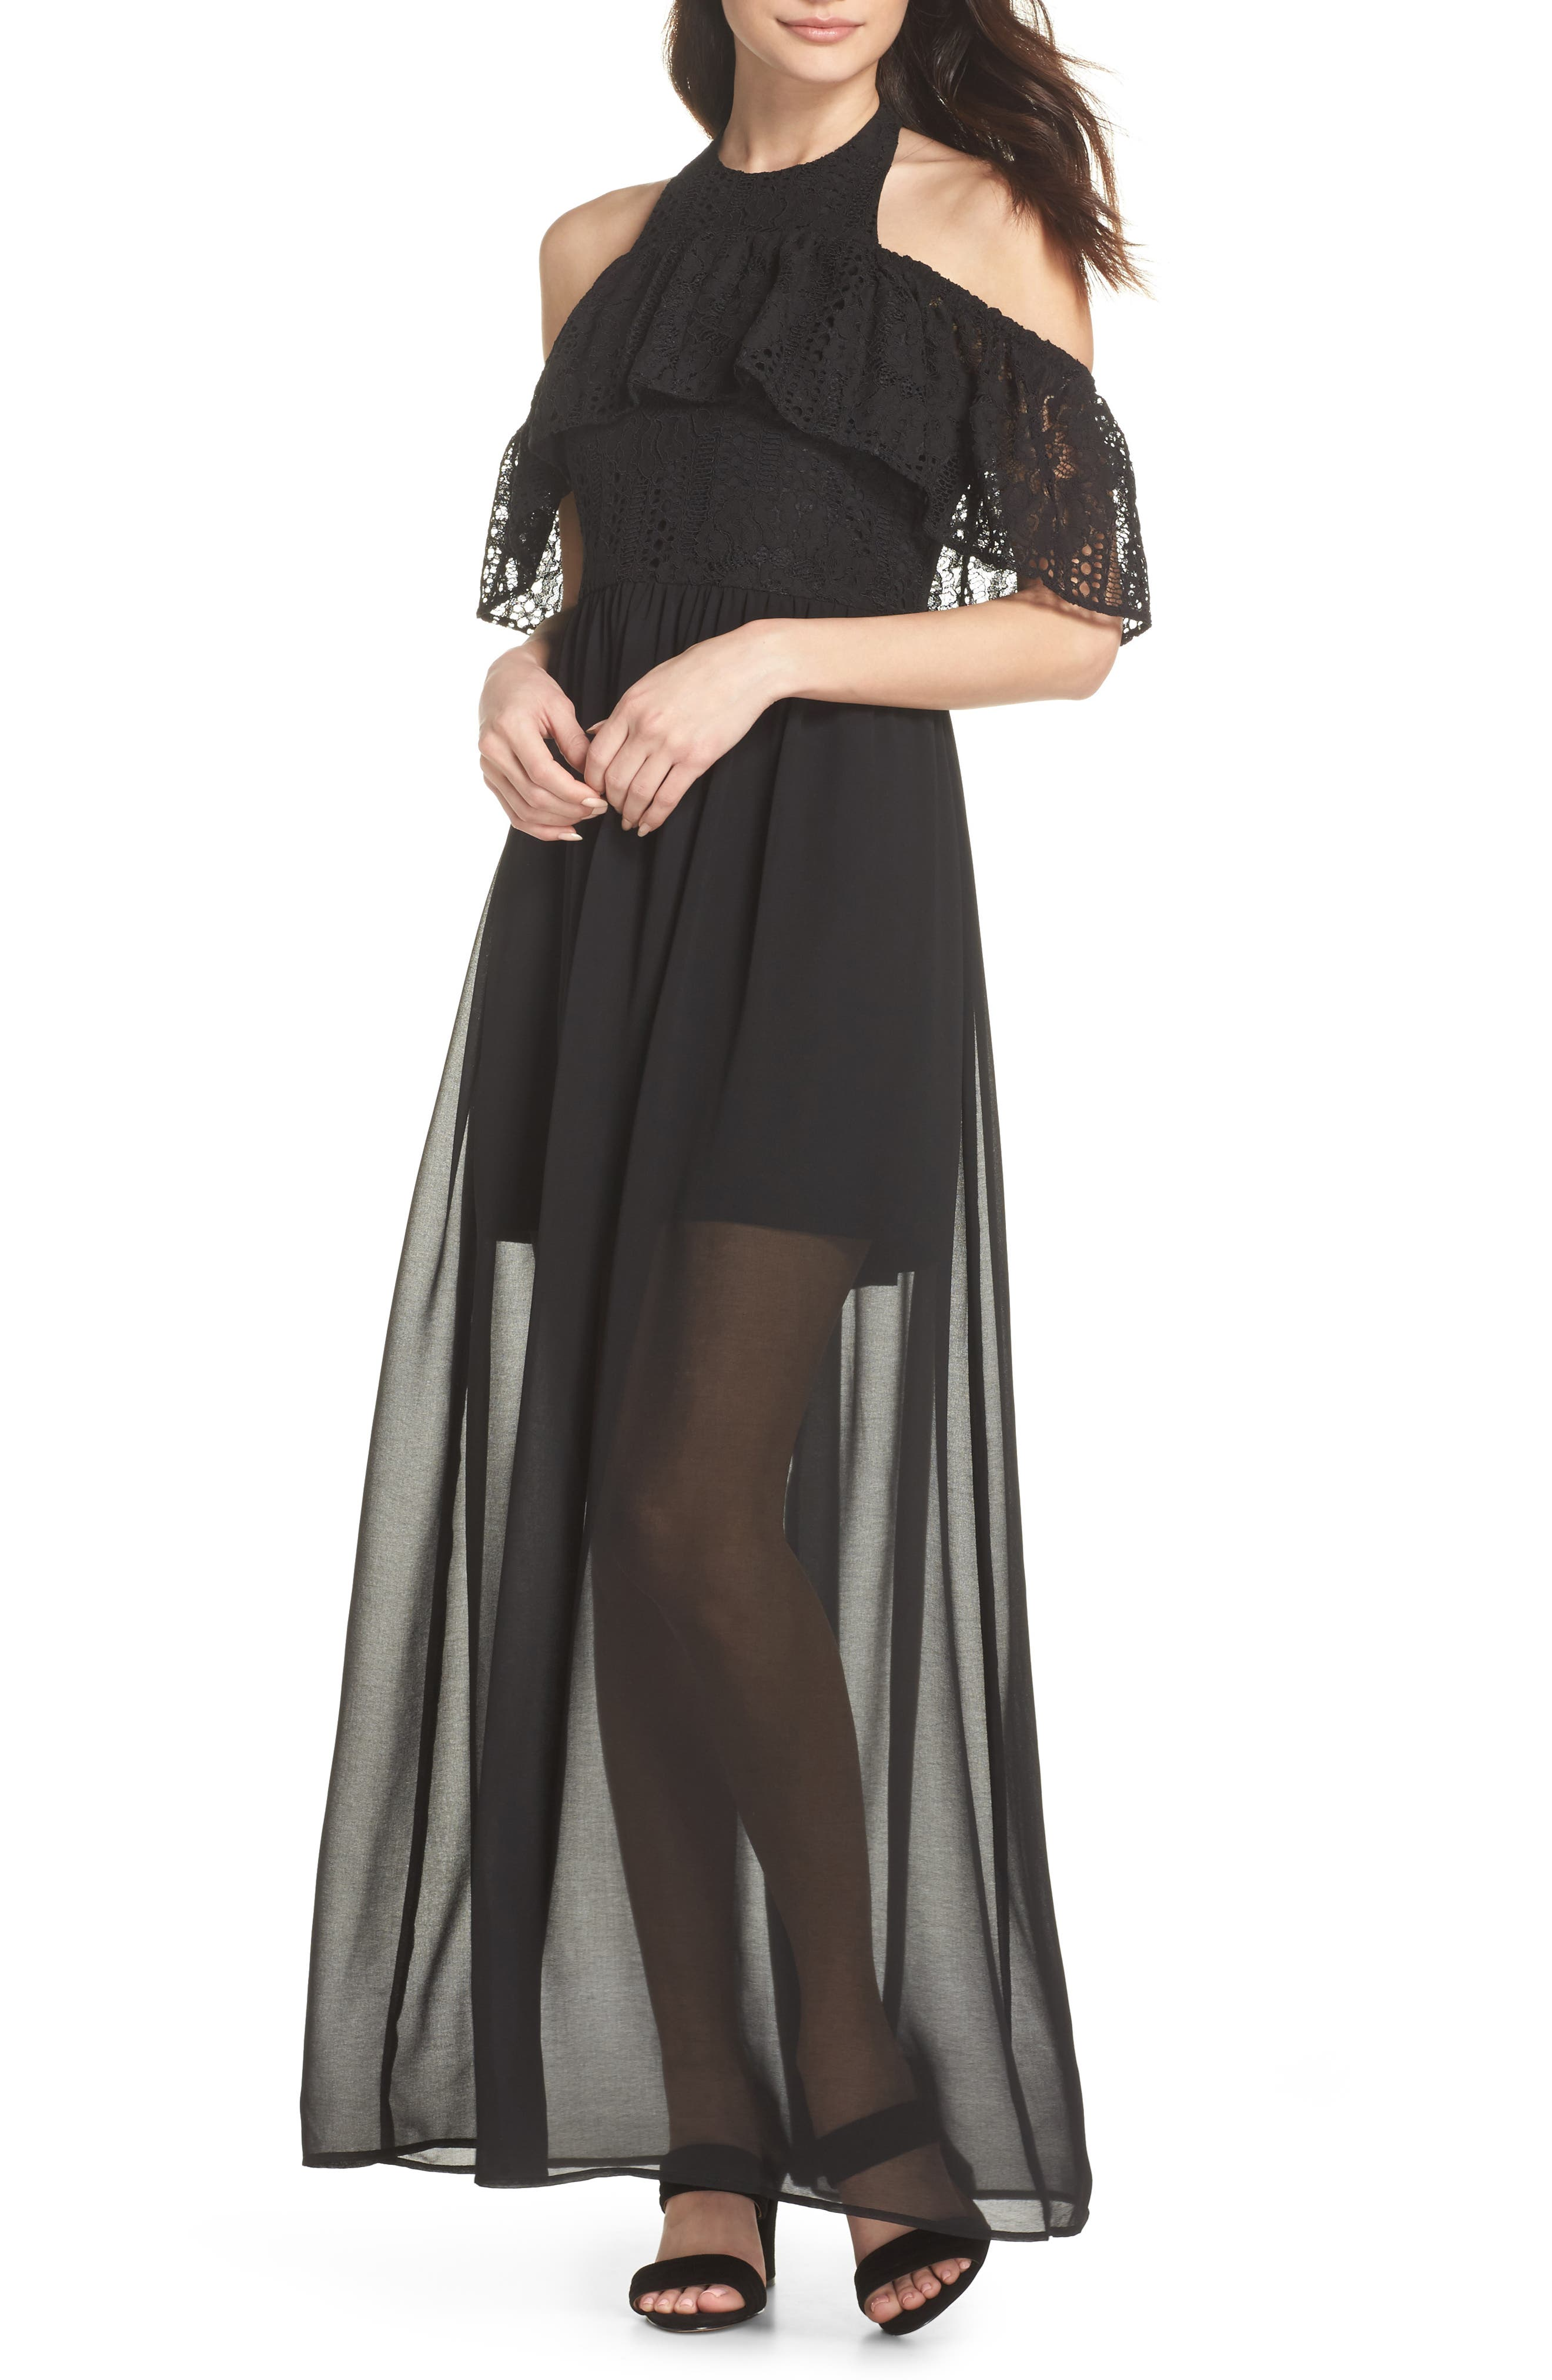 Main Image - Ali & Jay One Hand One Heart Cold Shoulder Maxi Dress